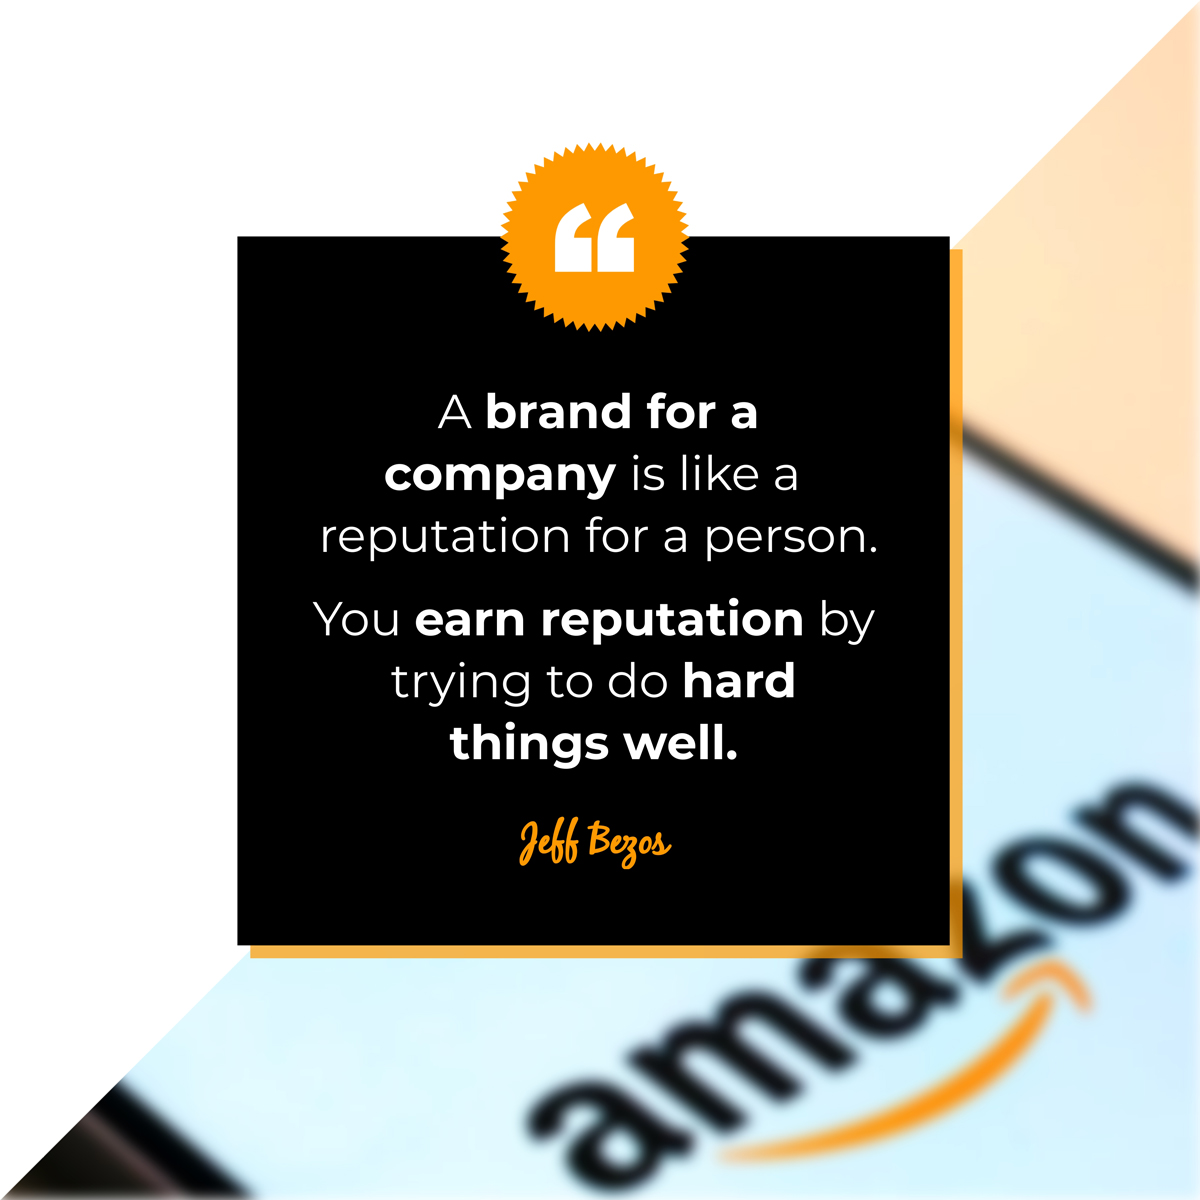 A quote about branding by Jeff Bezos.